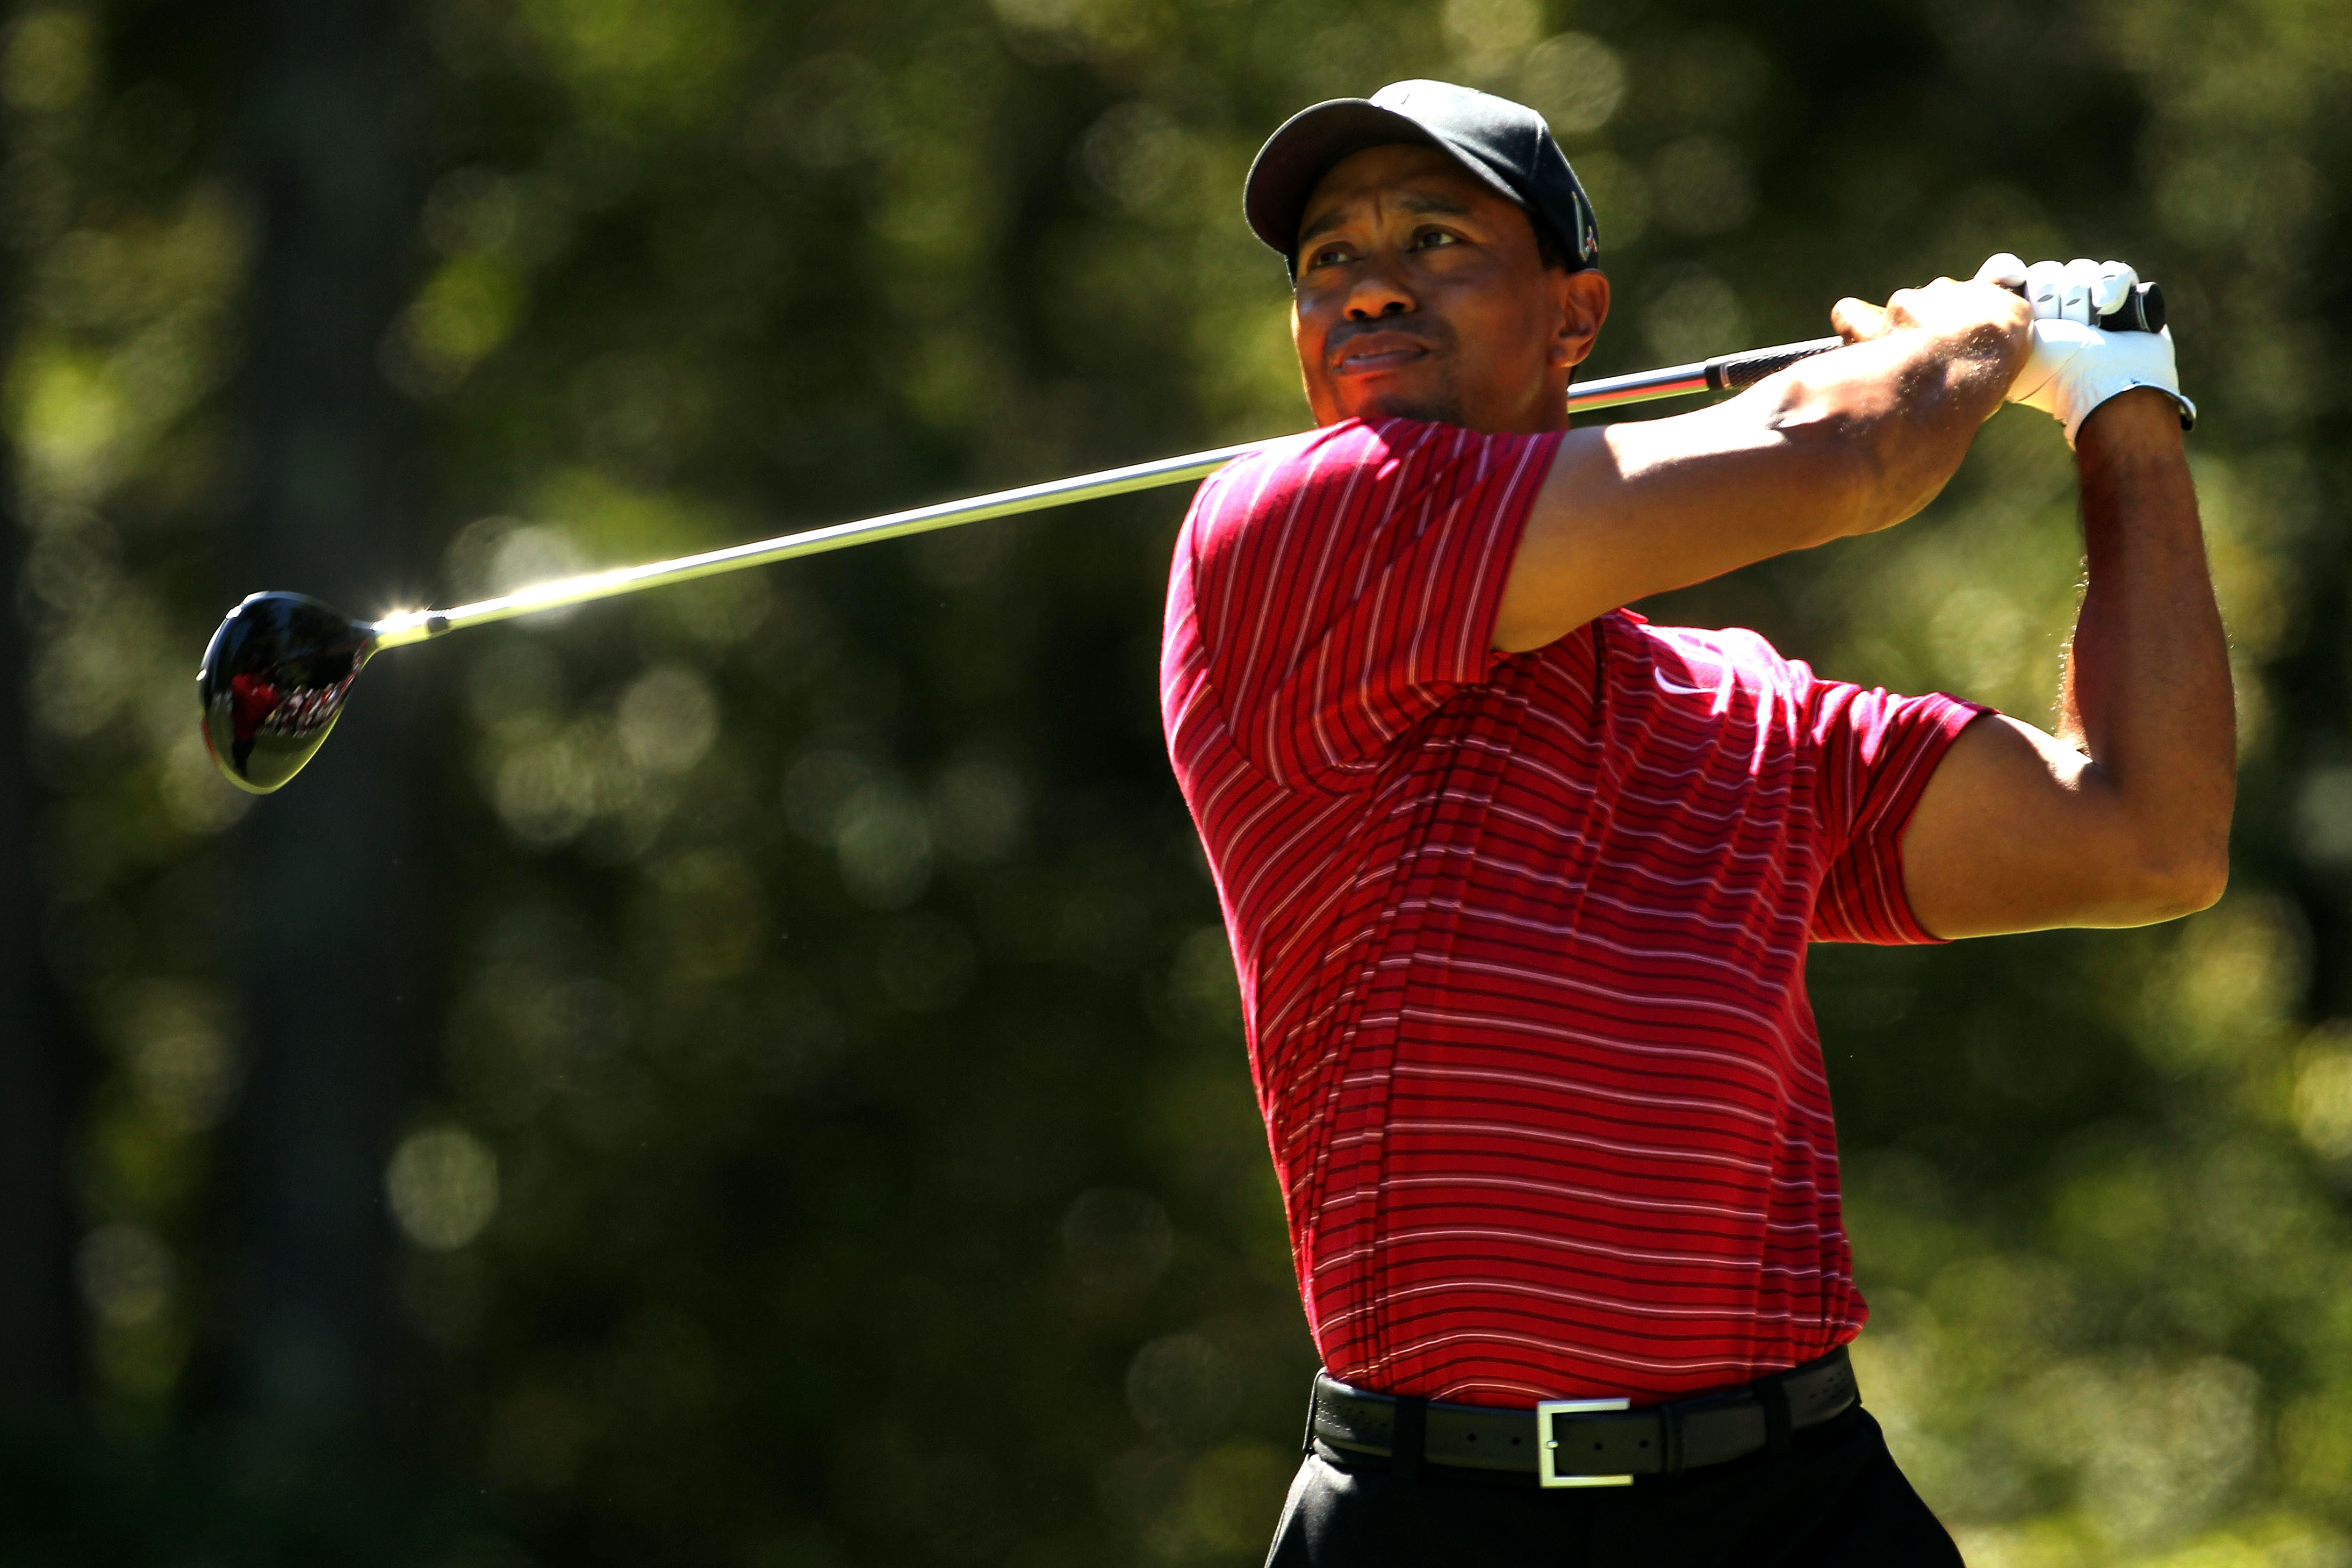 NORTON, MA - SEPTEMBER 06:  Tiger Woods tees off on the second hole during the final round of the Deutsche Bank Championship at TPC Boston on September 6, 2010 in Norton, Massachusetts.  (Photo by Mike Ehrmann/Getty Images)